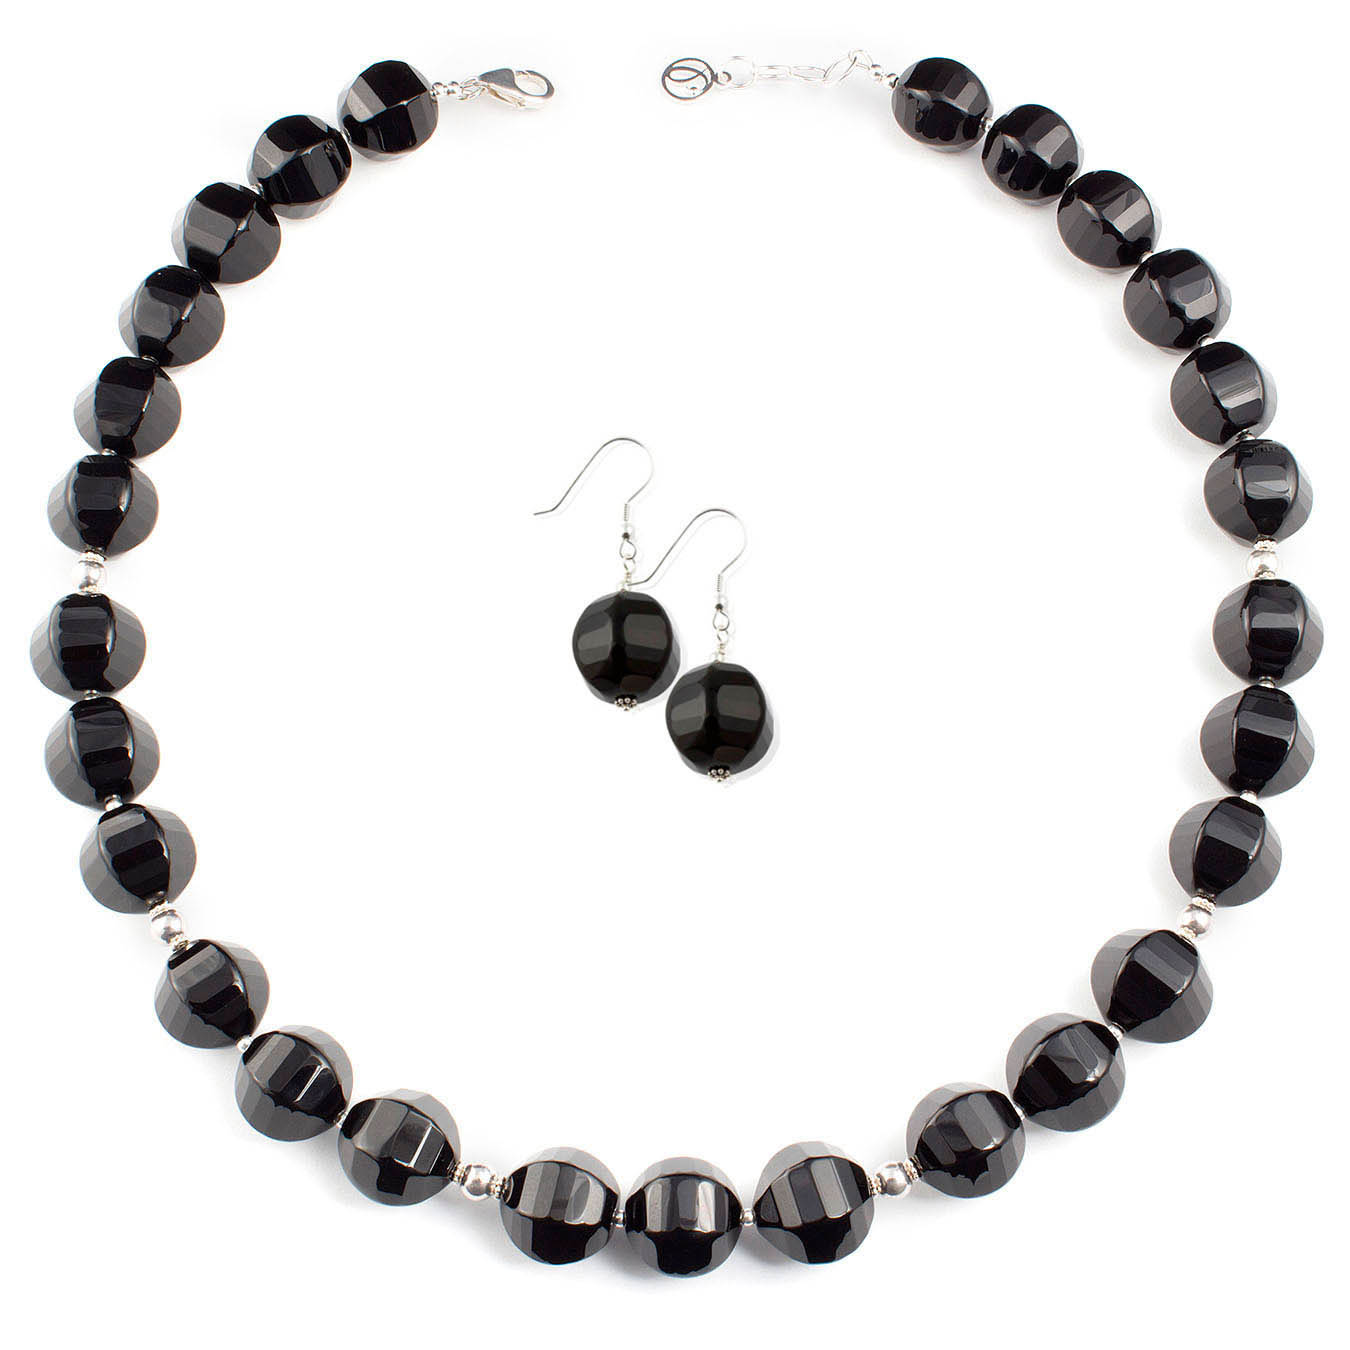 Handcrafted chunky black agate necklace with 925 sterling silver beads